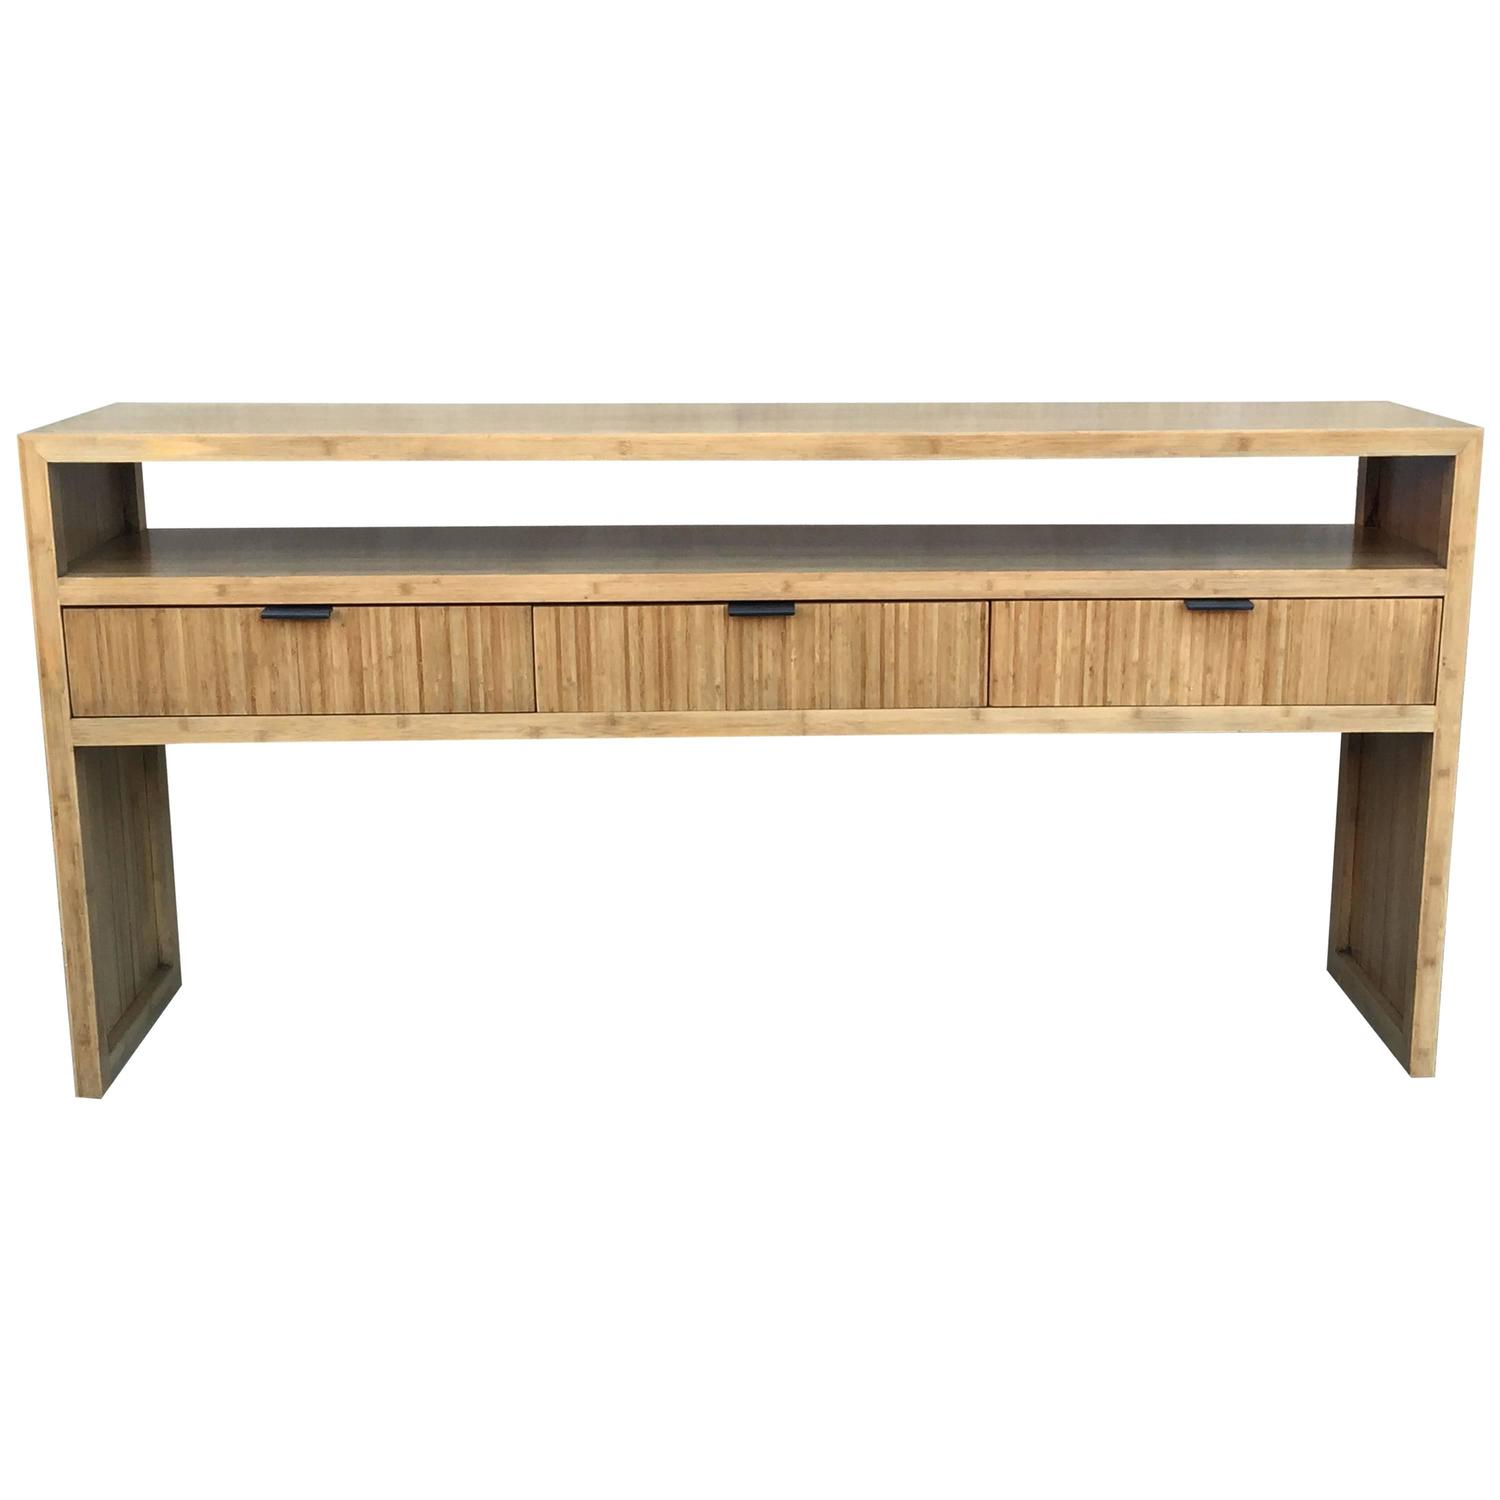 Solid bamboo console or sofa table at 1stdibs for Sofa table unfinished